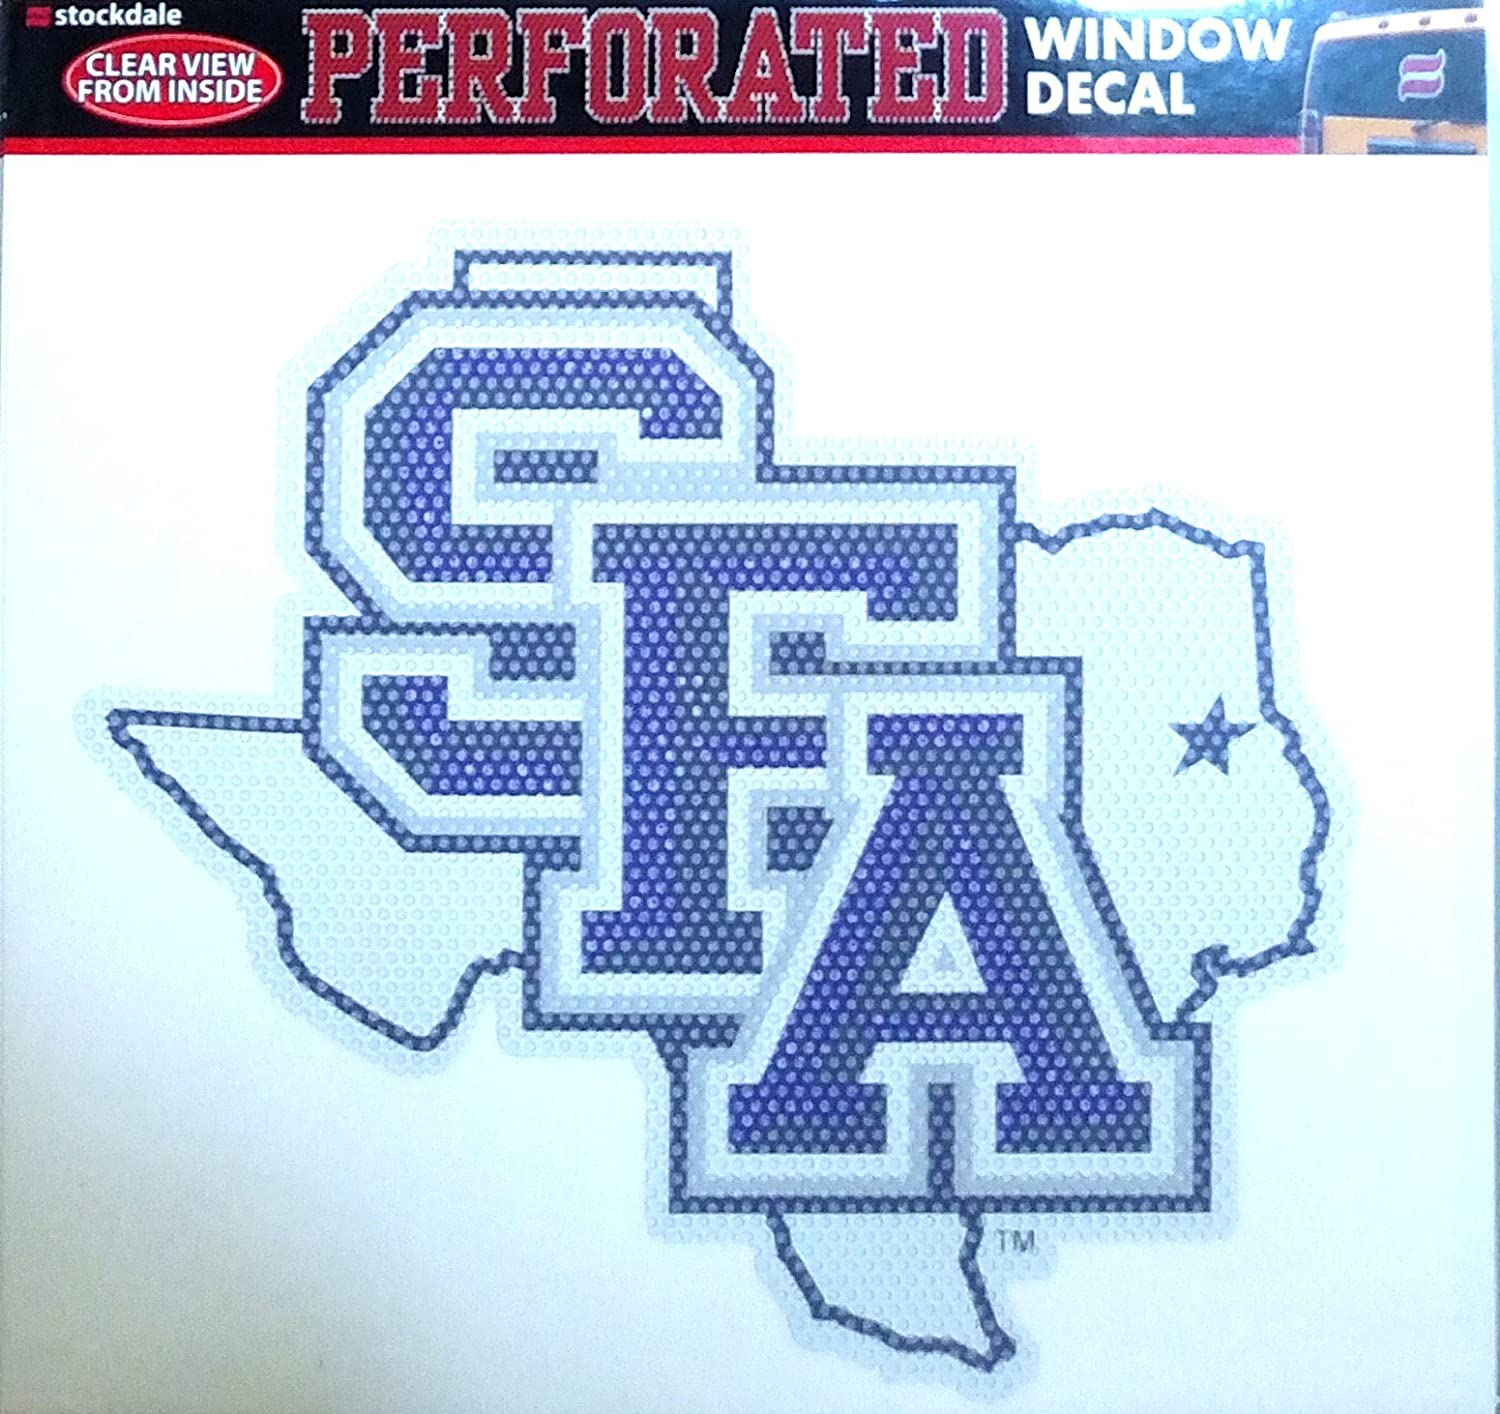 Stephen F Austin Lumberjacks SFA SD Medium 8' Perforated Auto Window Film Decal University of